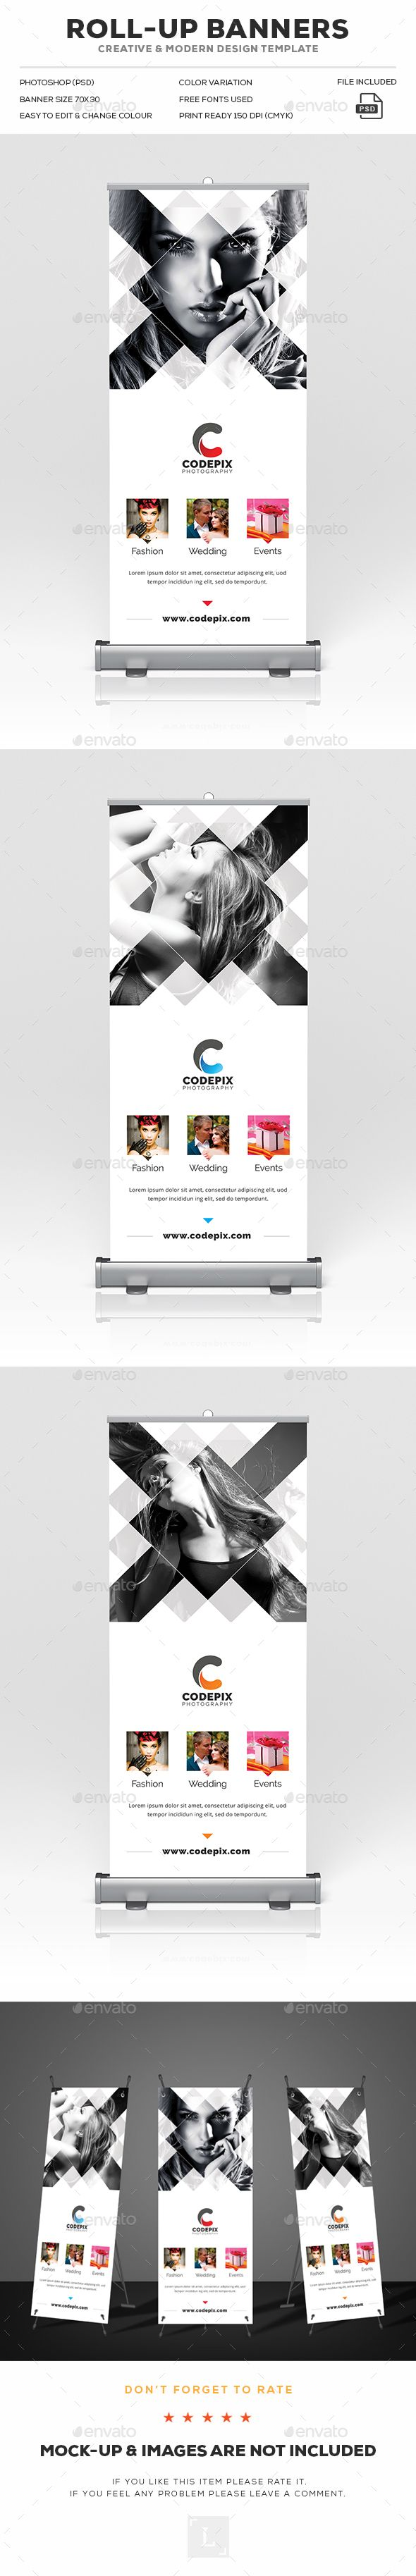 Photography Roll-Up Banner Template PSD. Download here: https://graphicriver.net/item/photography-rollup-banner/17049678?ref=ksioks